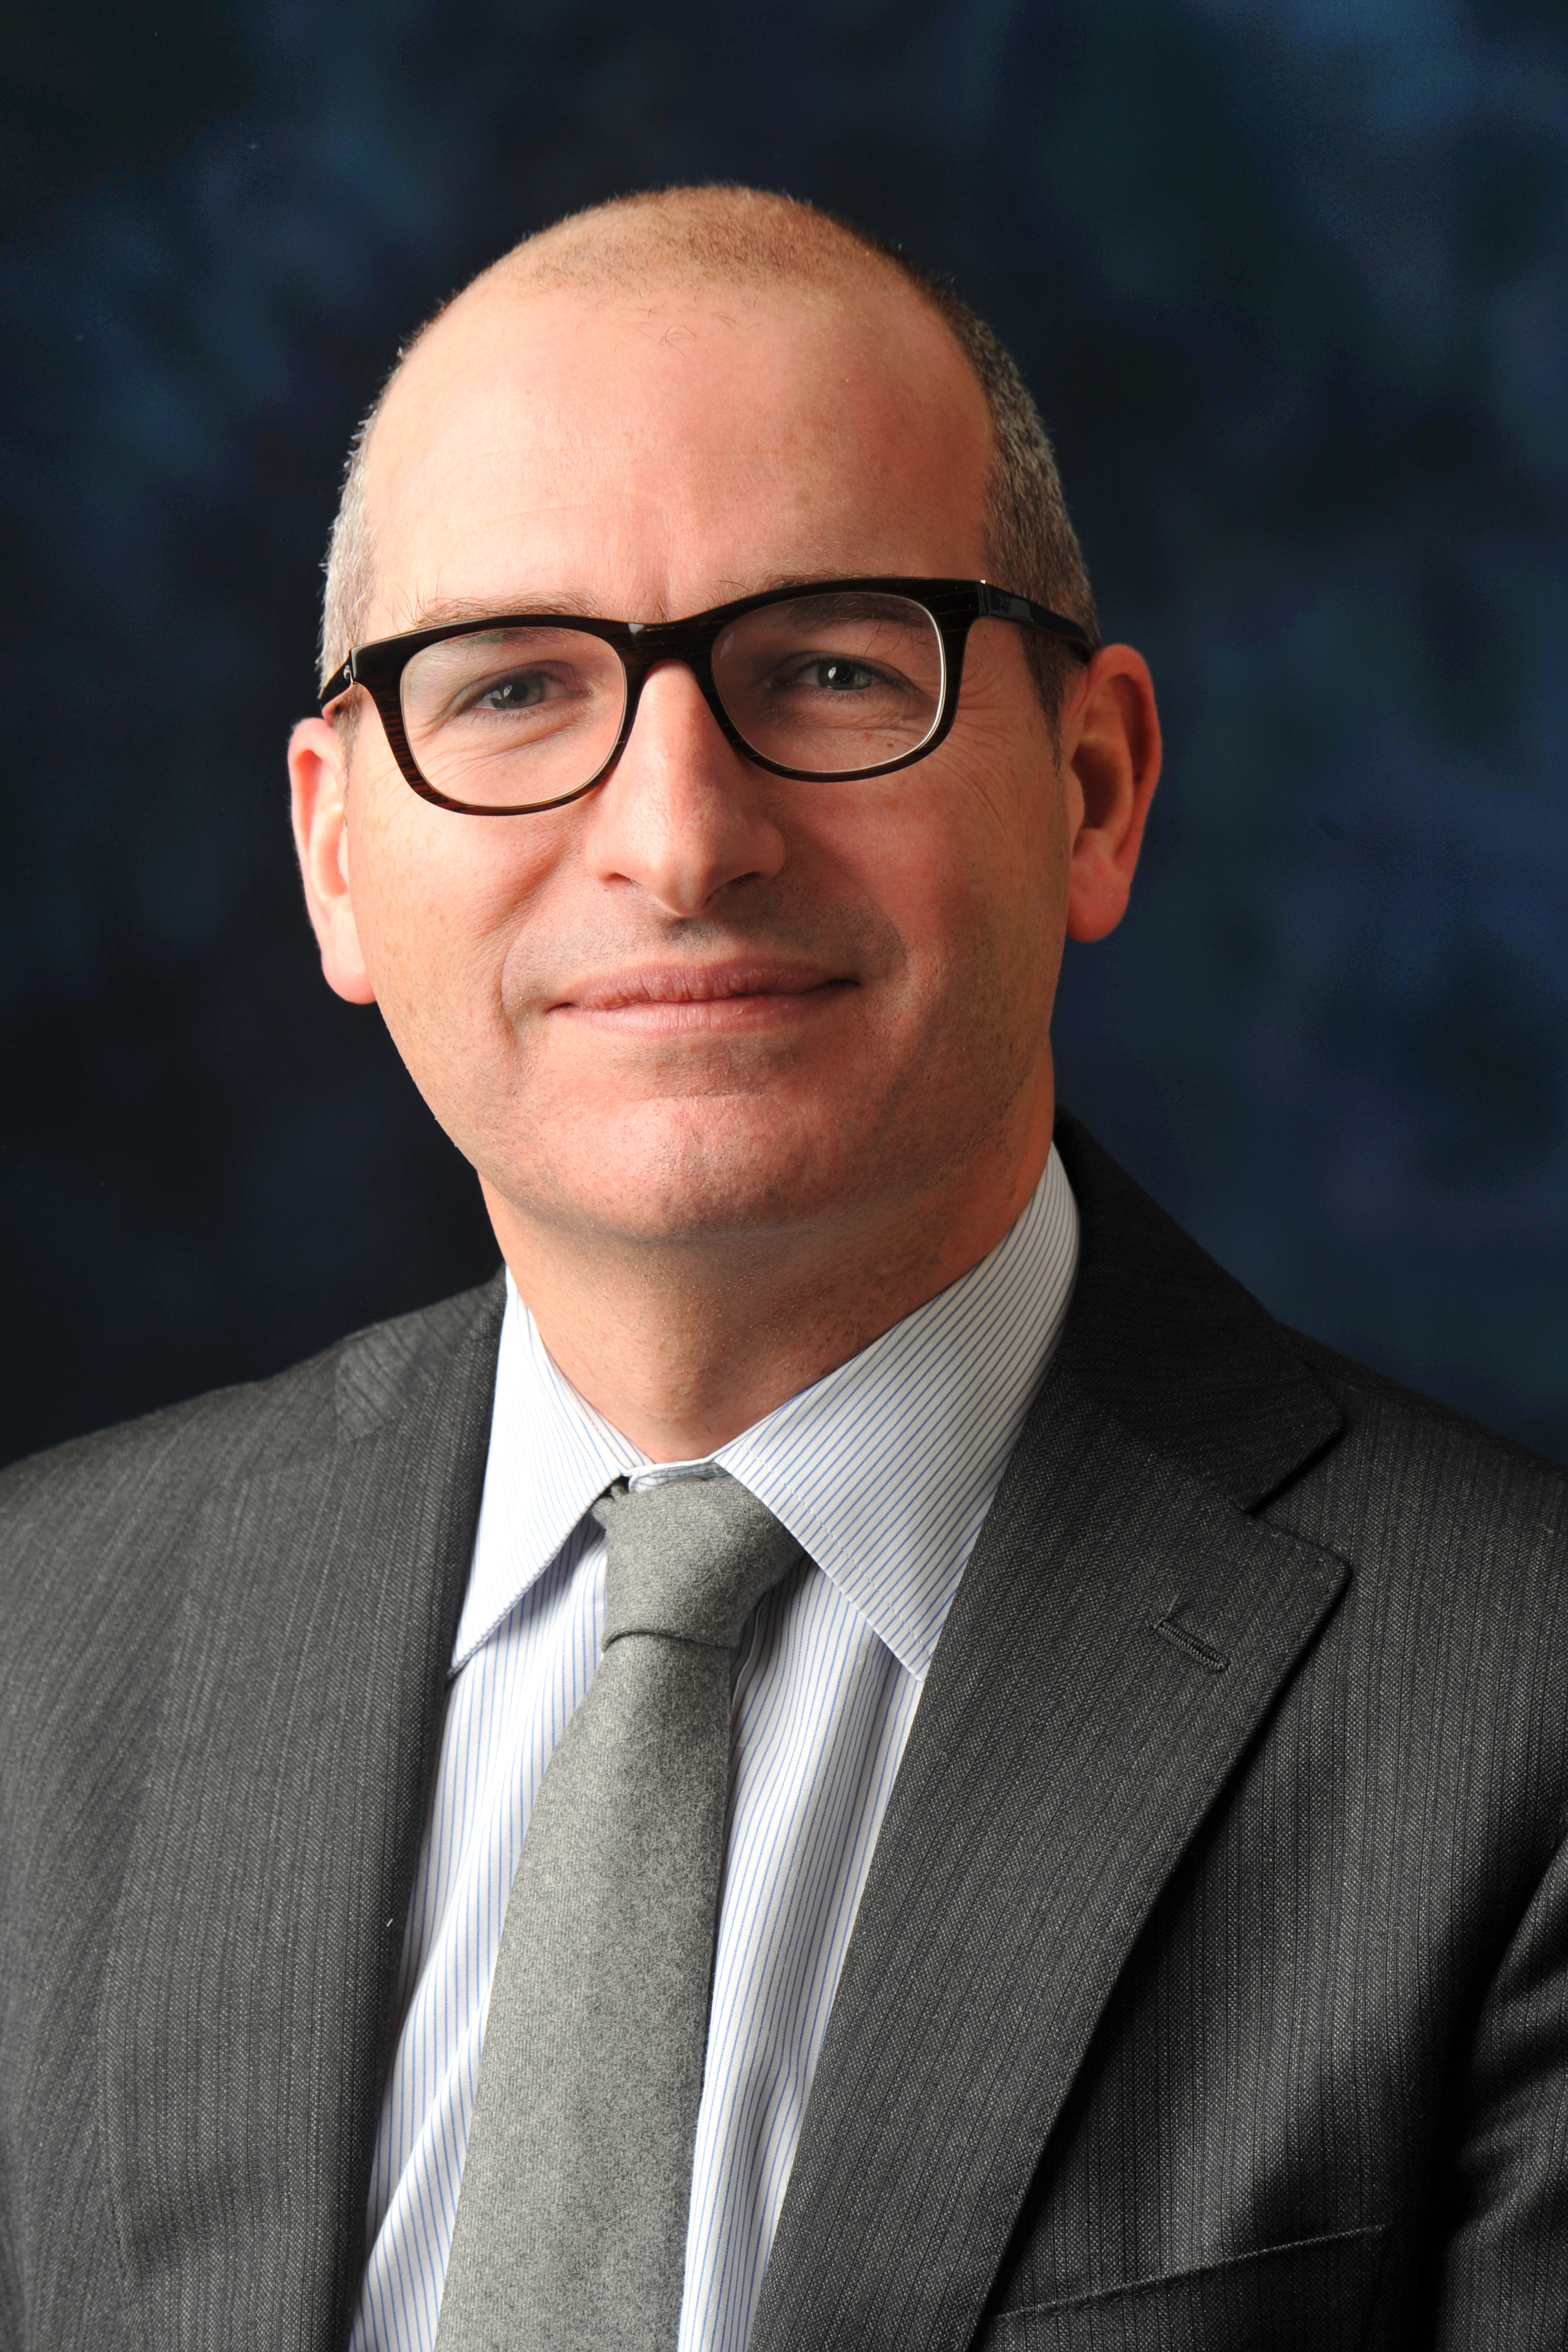 Paolo Lironi appointed Interim Chief Executive Officer of SGI Aviation Services B.V., a Seabury Group company (Photo: Business Wire)